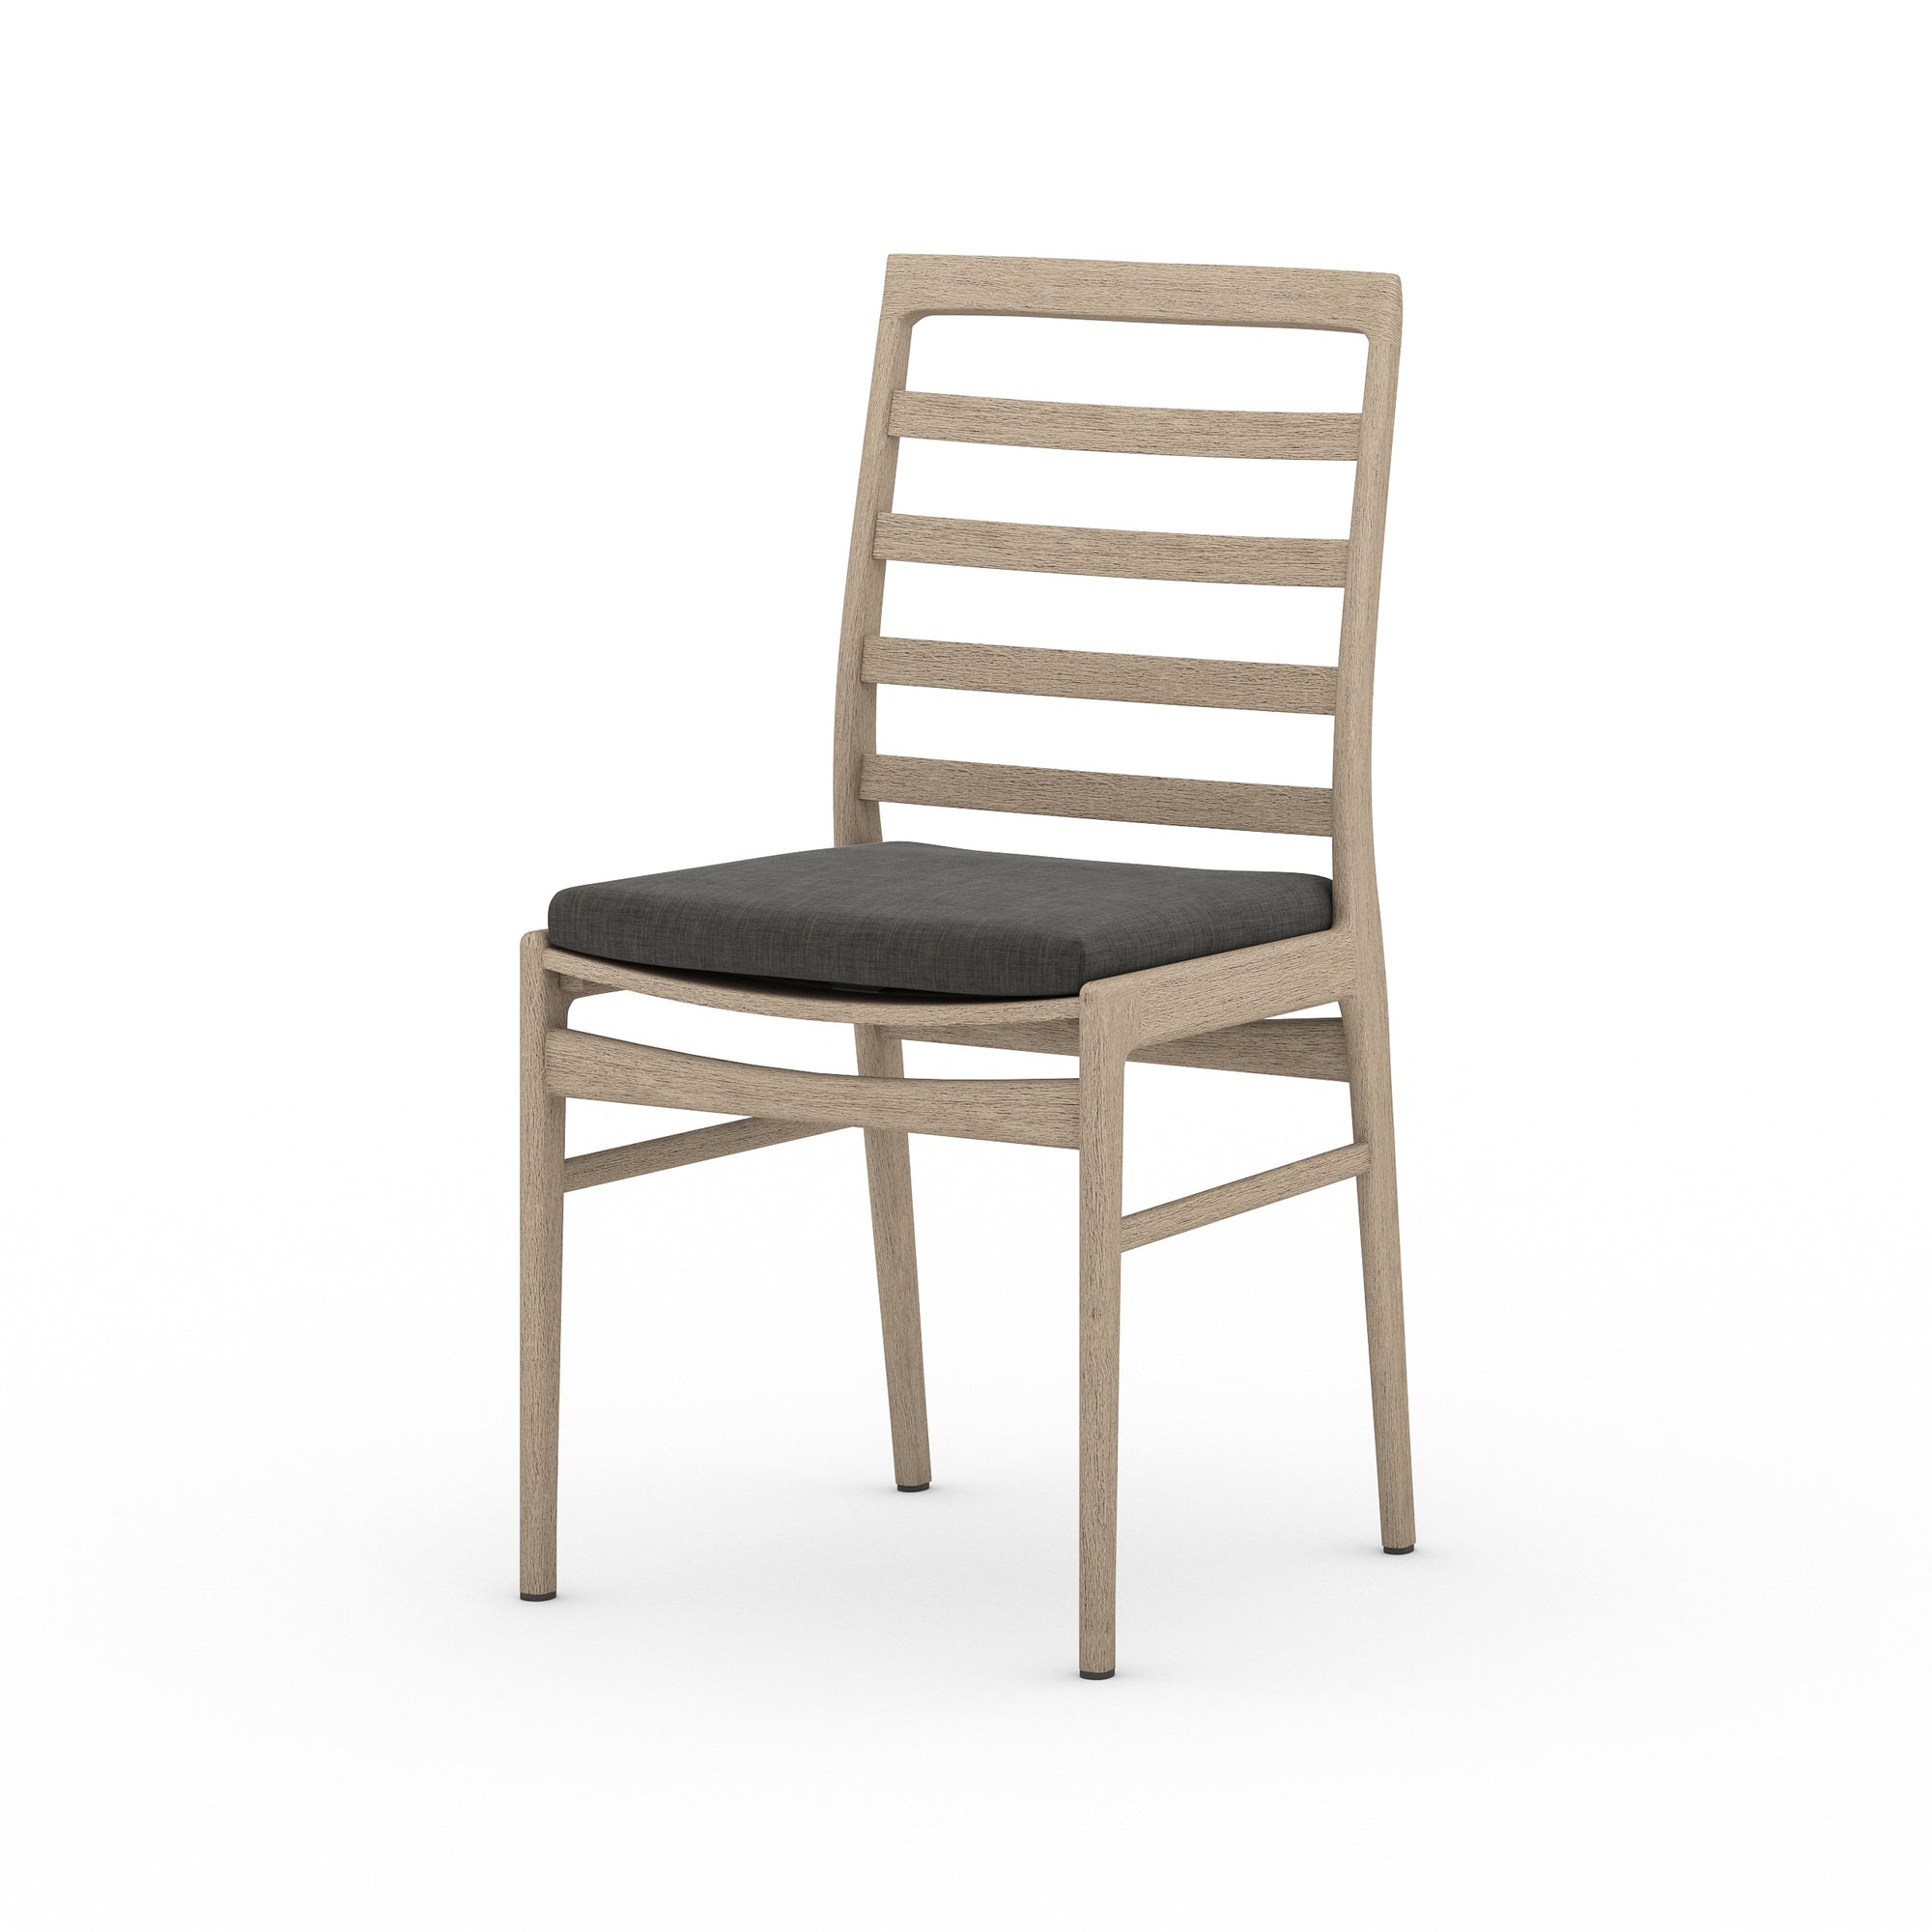 Linnet Outdor Dining Chair - Brown/Charcoa